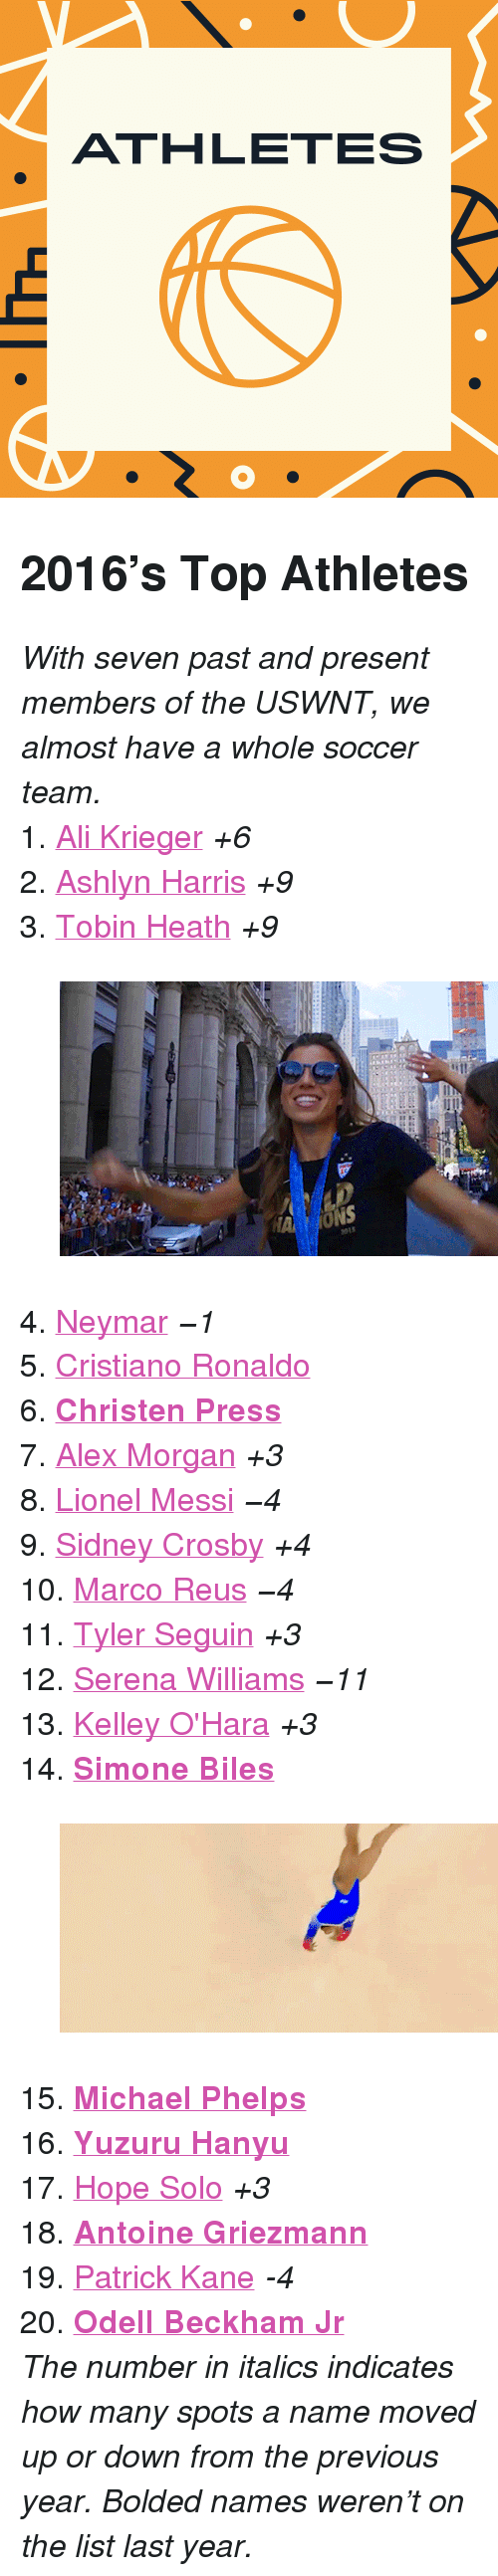 """christen: ATHLETES <h2>2016&rsquo;s Top Athletes</h2><p><i>With seven past and present members of the USWNT, we almost have a whole soccer team.</i></p><p>1. <a href=""""http://www.tumblr.com/search/ali%20krieger"""">Ali Krieger</a><i> +6<br/></i>2. <a href=""""http://www.tumblr.com/search/ashlyn%20harris"""">Ashlyn Harris</a><i> +9<br/></i>3. <a href=""""http://www.tumblr.com/search/tobin%20heath"""">Tobin Heath</a><i> +9</i></p><figure data-orig-width=""""500"""" data-orig-height=""""276"""" data-tumblr-attribution=""""epitomeofloyalty:esj_EmRiCyMoOhVaFSAKJw:ZE5nHy1q4L9rh"""" class=""""tmblr-full""""><img src=""""https://78.media.tumblr.com/c3e67d10cbf2d53c740ce4c13dbd09ff/tumblr_nrtgr68fU01qc9dmlo1_500.gif"""" alt=""""image"""" data-orig-width=""""500"""" data-orig-height=""""276""""/></figure><p>4. <a href=""""http://www.tumblr.com/search/neymar"""">Neymar</a><i> −1<br/></i>5. <a href=""""http://www.tumblr.com/search/cristiano%20ronaldo"""">Cristiano Ronaldo</a><br/>6. <b><a href=""""http://www.tumblr.com/search/christen%20press"""">Christen Press</a><br/></b>7. <a href=""""http://www.tumblr.com/search/alex%20morgan"""">Alex Morgan</a><i> +3<br/></i>8. <a href=""""http://www.tumblr.com/search/lionel%20messi"""">Lionel Messi</a><i> −4<br/></i>9. <a href=""""http://www.tumblr.com/search/sidney%20crosby"""">Sidney Crosby</a><i> +4<br/></i>10. <a href=""""http://www.tumblr.com/search/marco%20reus"""">Marco Reus</a><i> −4<br/></i>11. <a href=""""http://www.tumblr.com/search/tyler%20seguin"""">Tyler Seguin</a><i> +3<br/></i>12. <a href=""""http://www.tumblr.com/search/serena%20williams"""">Serena Williams</a><i> −11<br/></i>13. <a href=""""http://www.tumblr.com/search/kelley%20o'hara"""">Kelley O'Hara</a><i> +3<br/></i>14. <b><a href=""""http://www.tumblr.com/search/simone%20biles"""">Simone Biles</a></b></p><figure data-orig-width=""""500"""" data-orig-height=""""210"""" data-tumblr-attribution=""""mustafinesse:FPtltNIWqZZw8CrGrLO_Dg:ZmsmCq2BI6aM_"""" class=""""tmblr-full""""><img src=""""https://78.media.tumblr.com/3631f1da0402094c6f86e235988ea1b0/tumblr_ockmp4qBaB1sklz4fo1_500.gif"""" alt=""""image"""" data-orig-width=""""500"""" data-"""